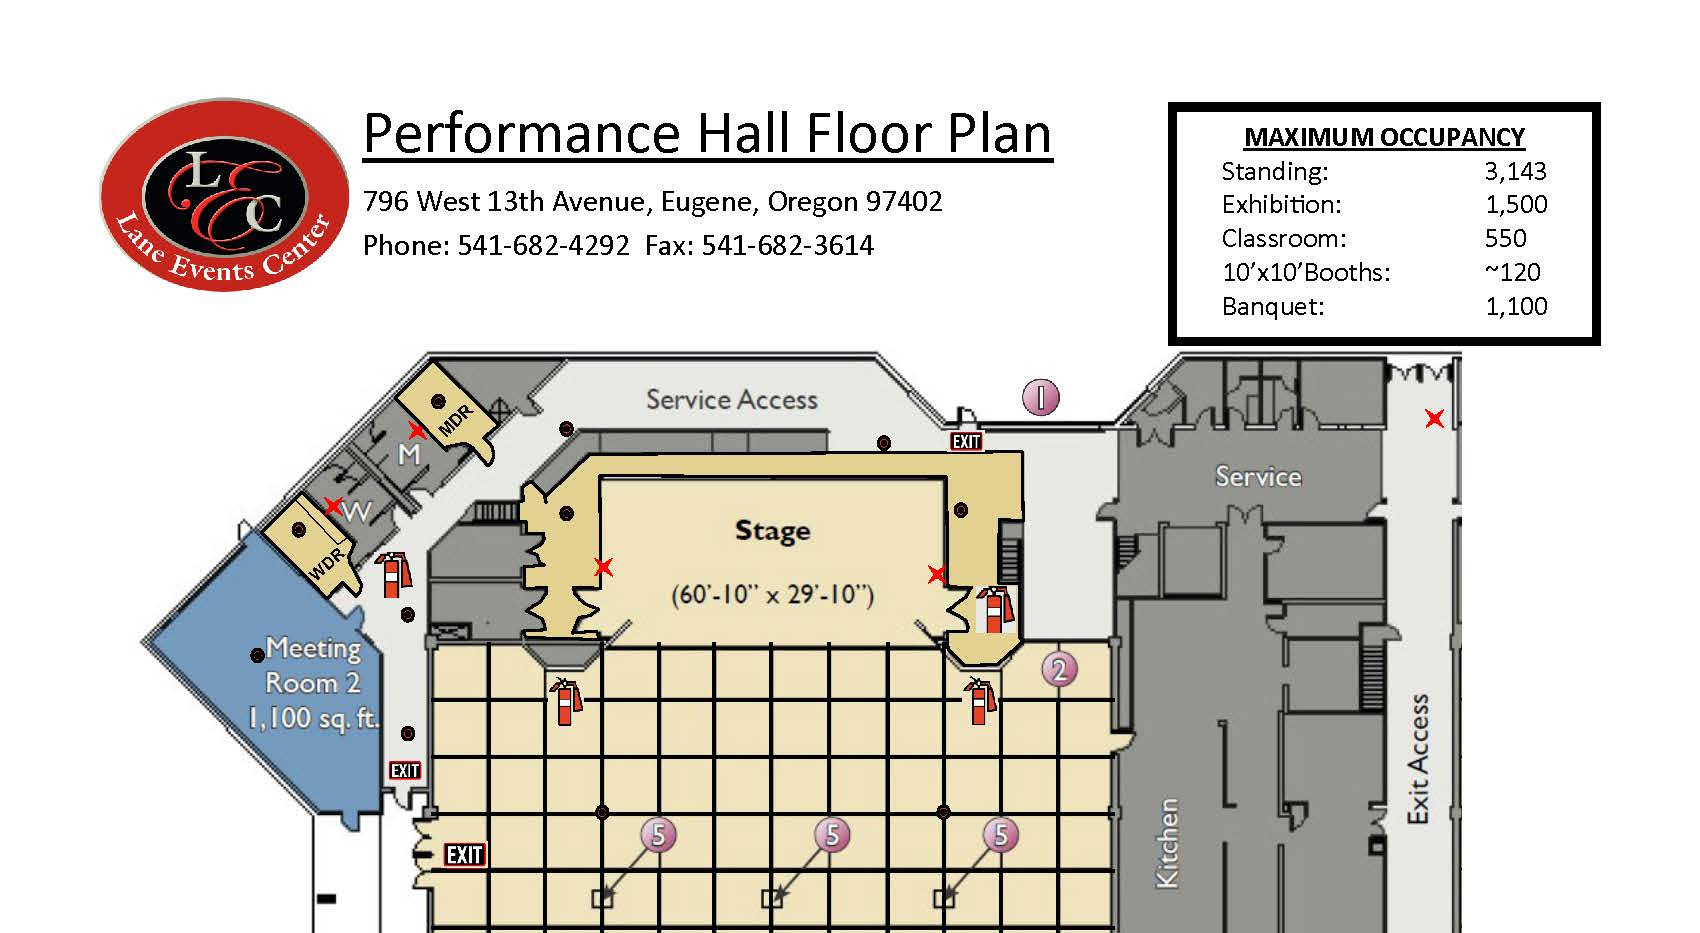 Performance Hall Diagram Aug 2015.jpg